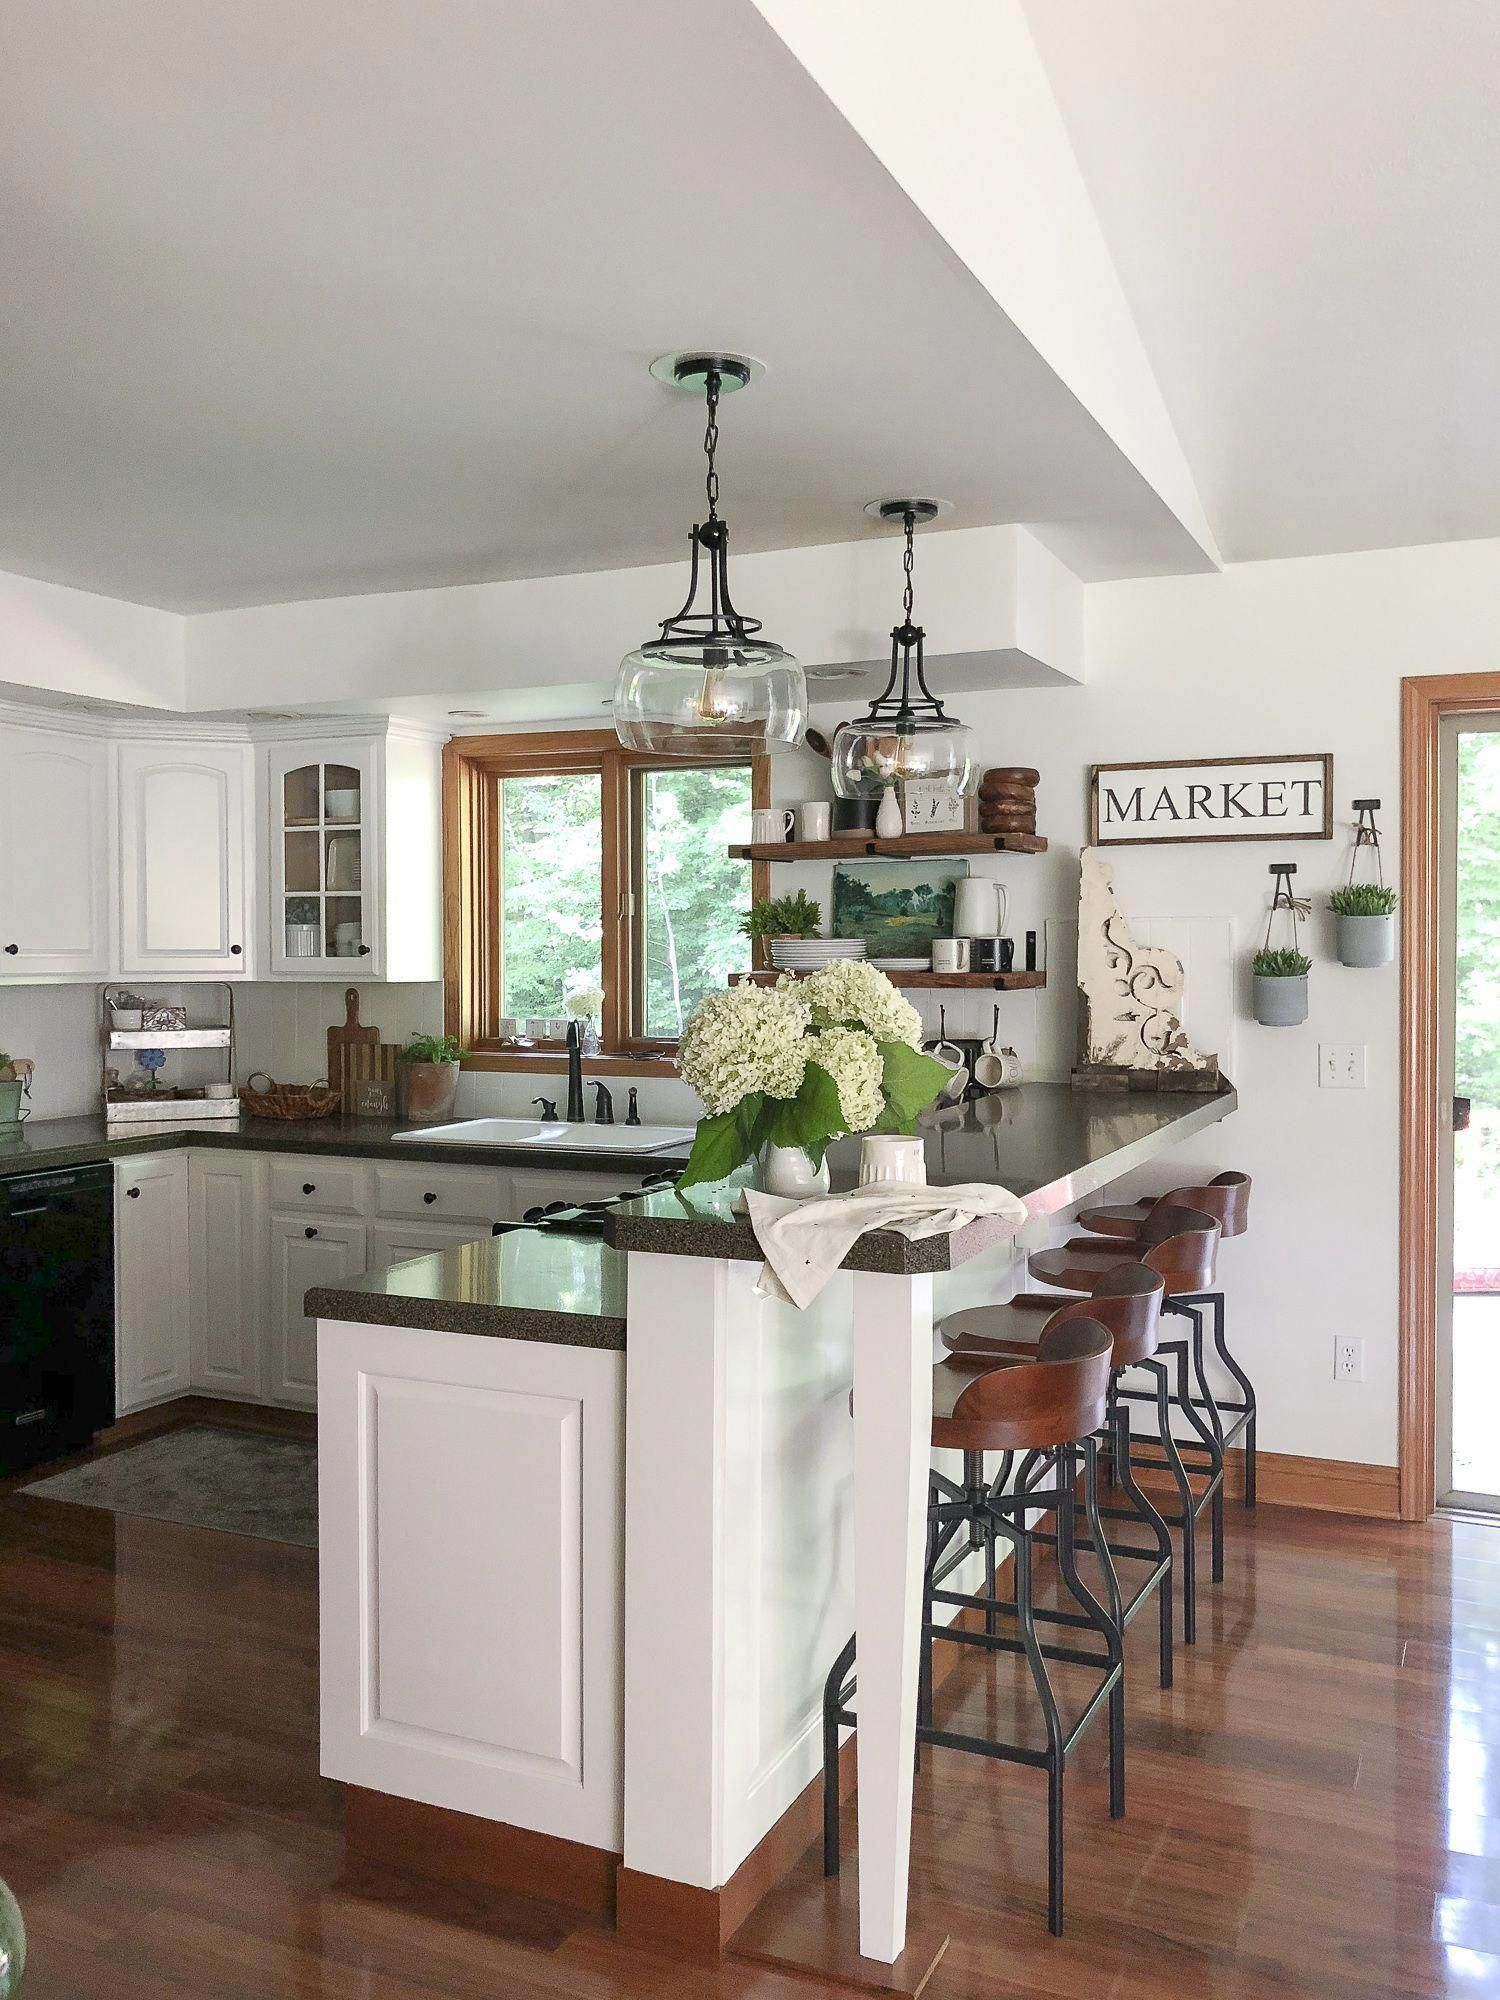 Kitchen Remodel on a Budget #kitchenremodelideas